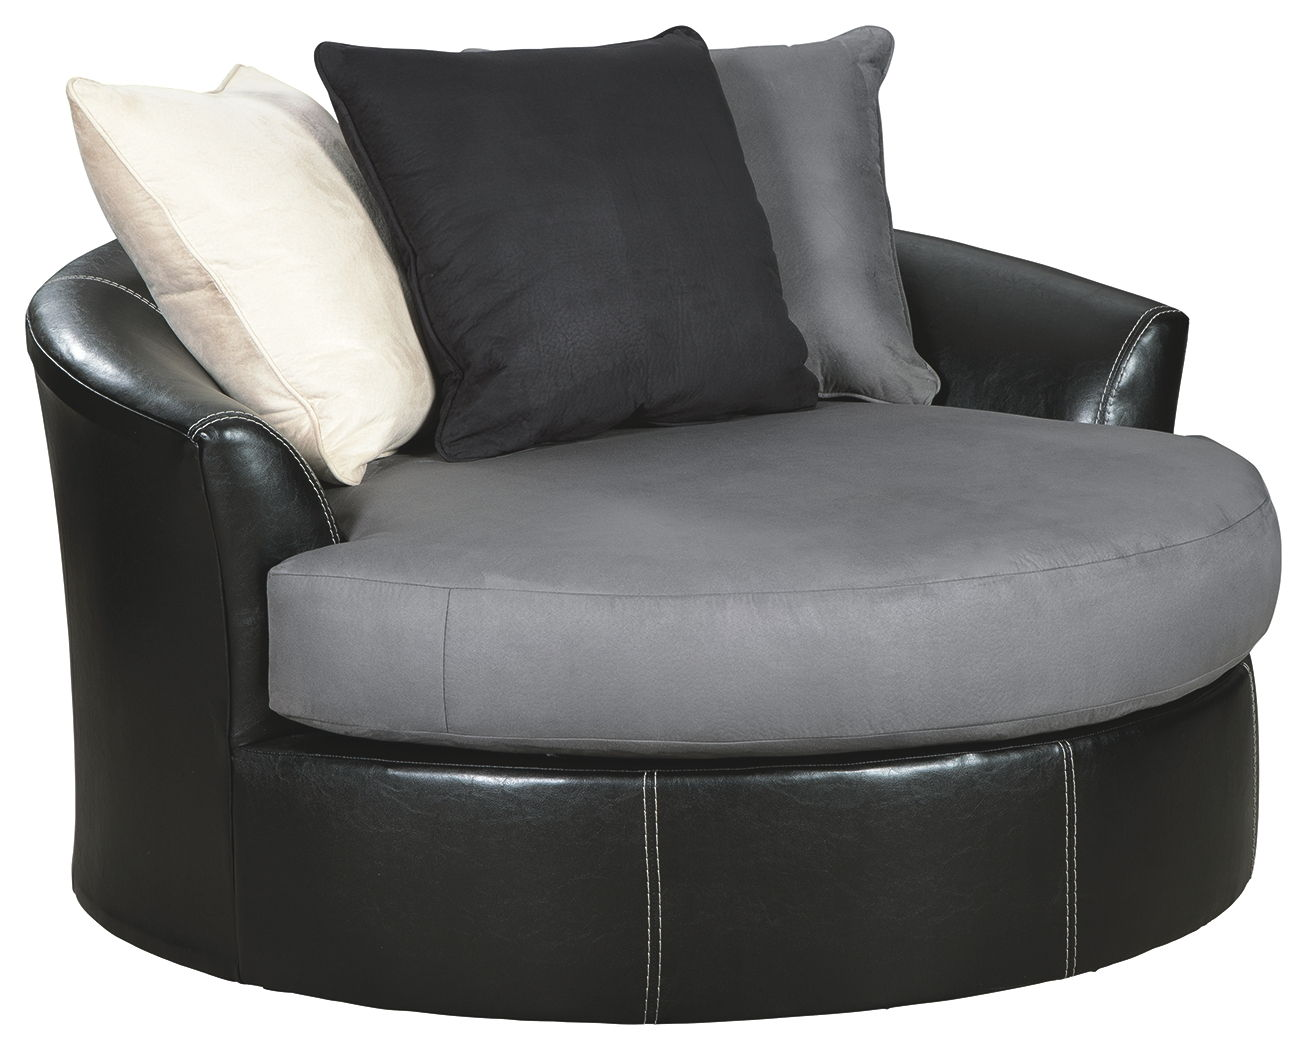 Jacurso Oversized Chair | Calgary's Furniture Store